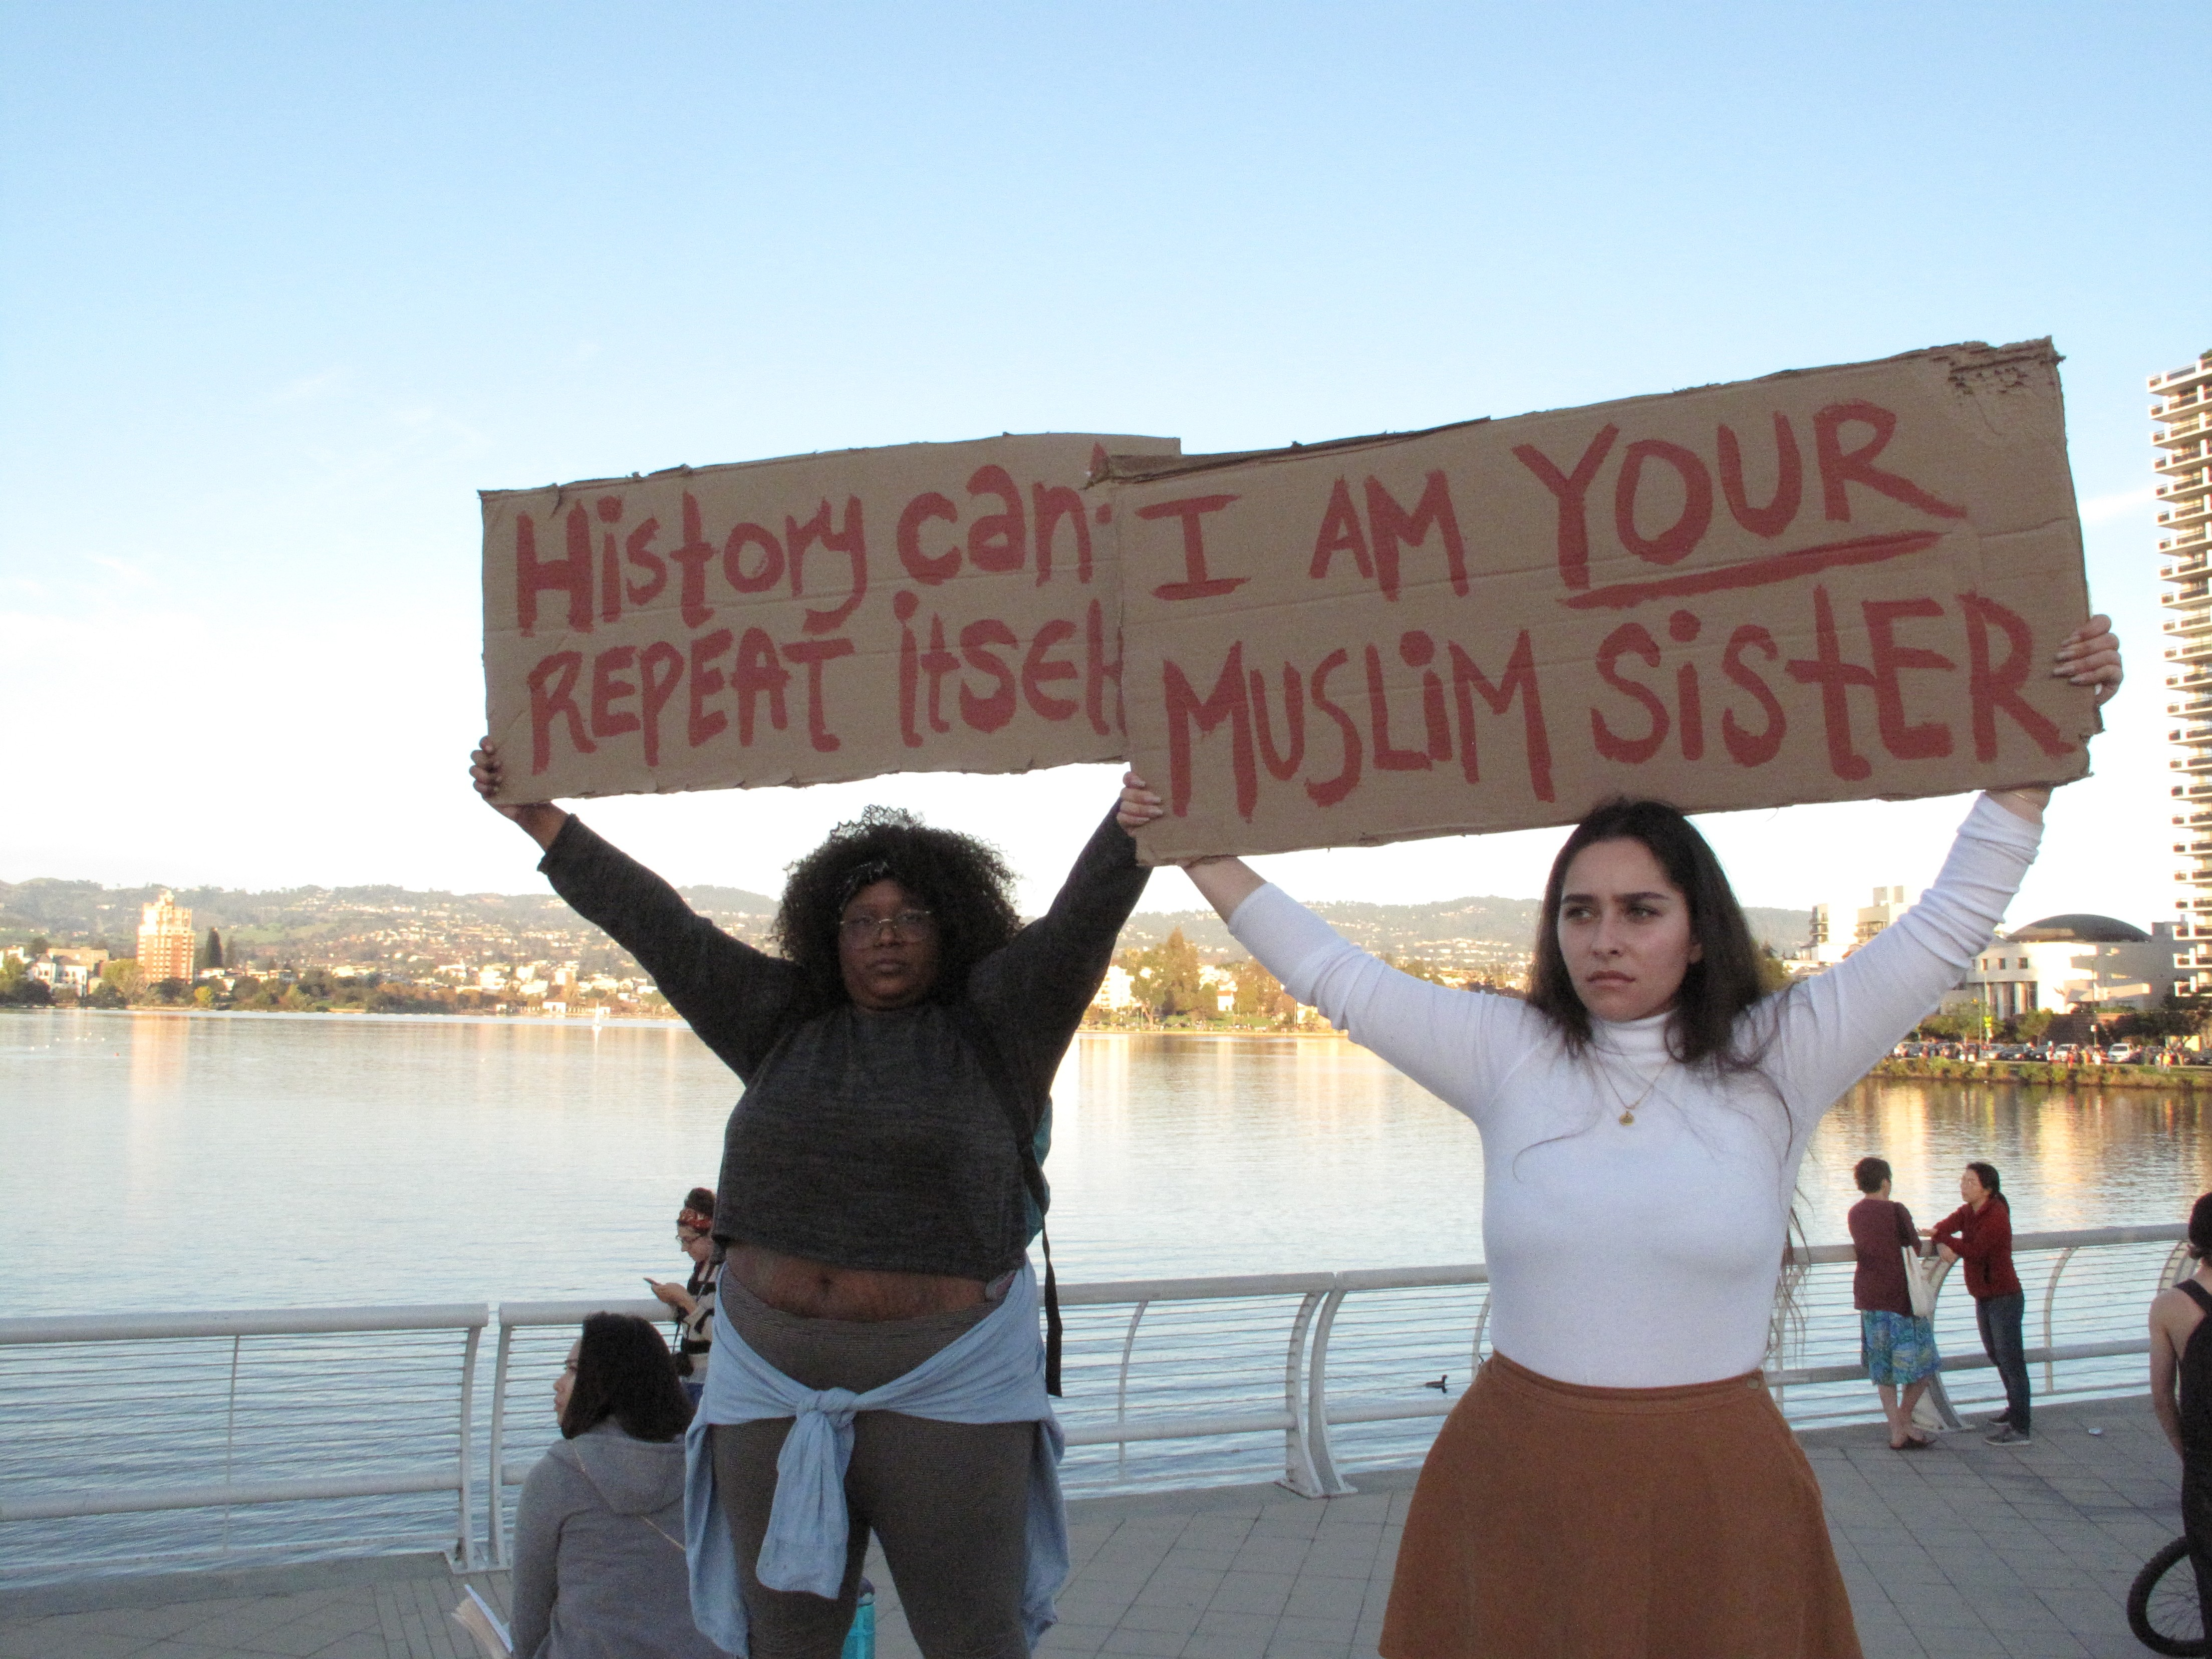 protesters join hands around lake merritt in oakland to protest